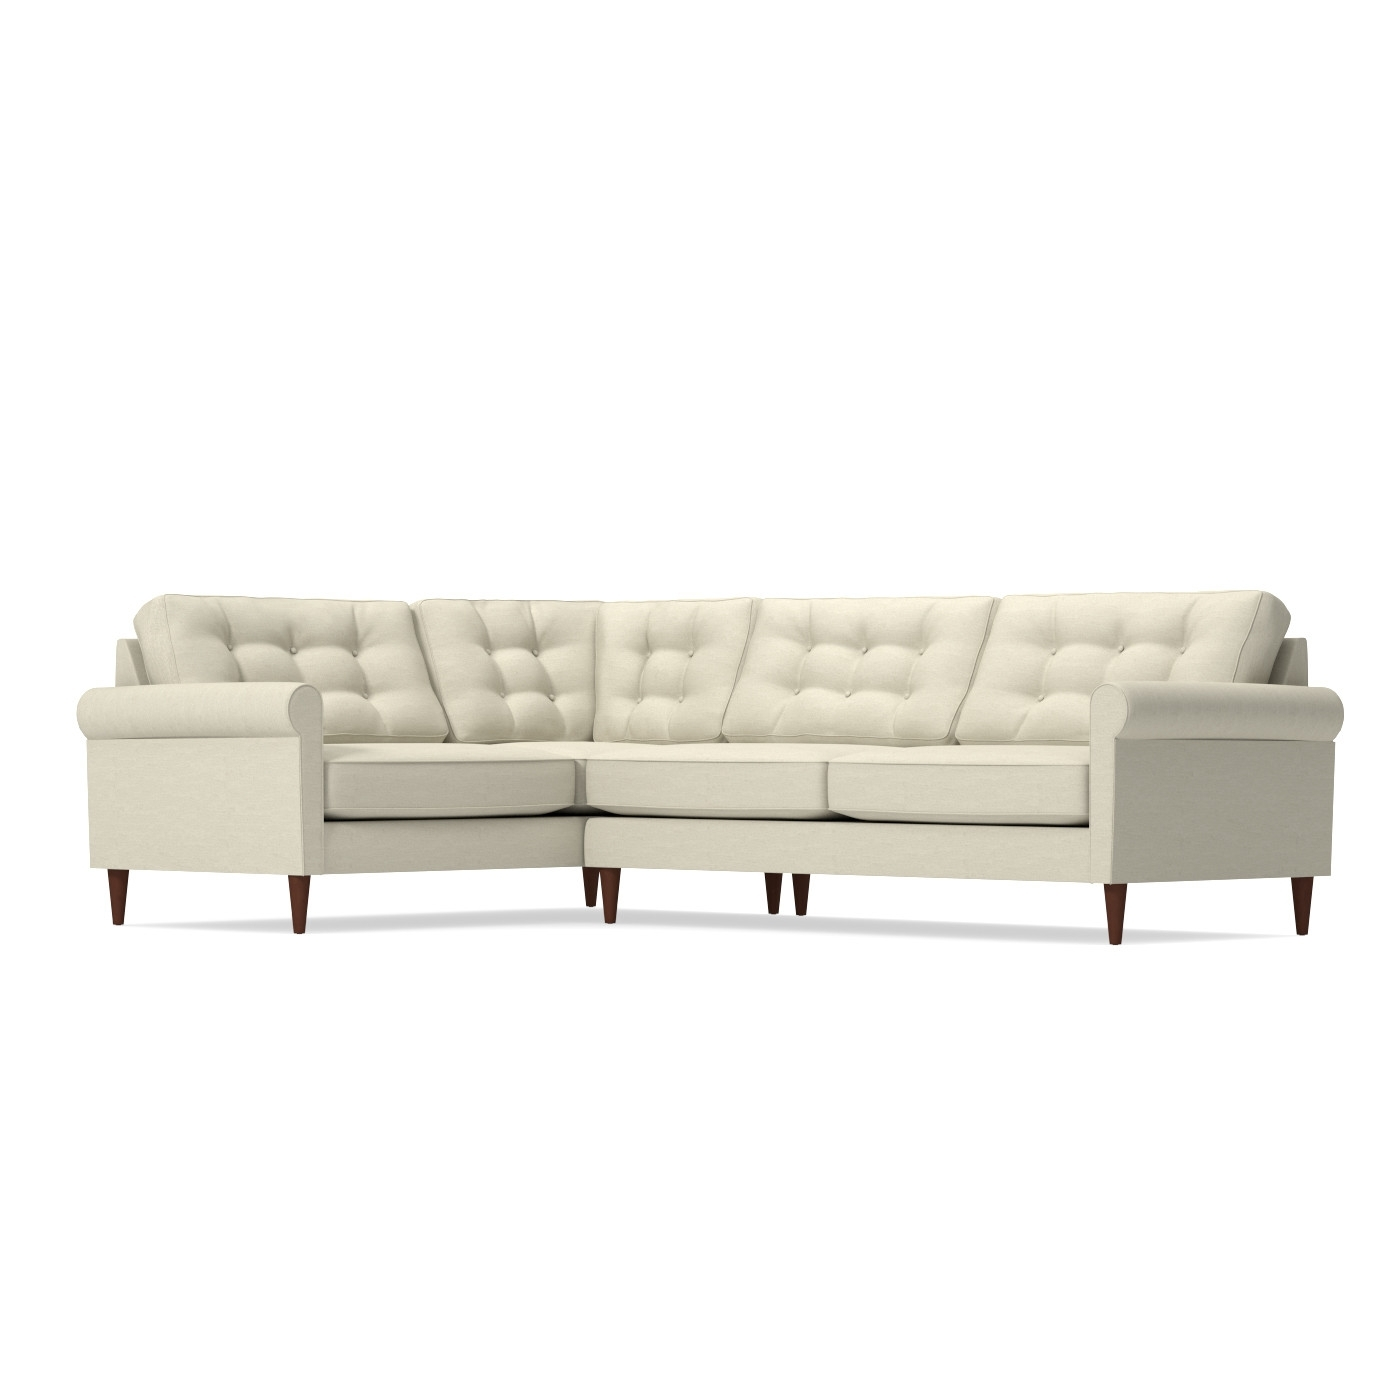 Most Current Eco Friendly Sectional Sofas With Hotelsbacau – Sectional Sofa Ideas (View 10 of 20)